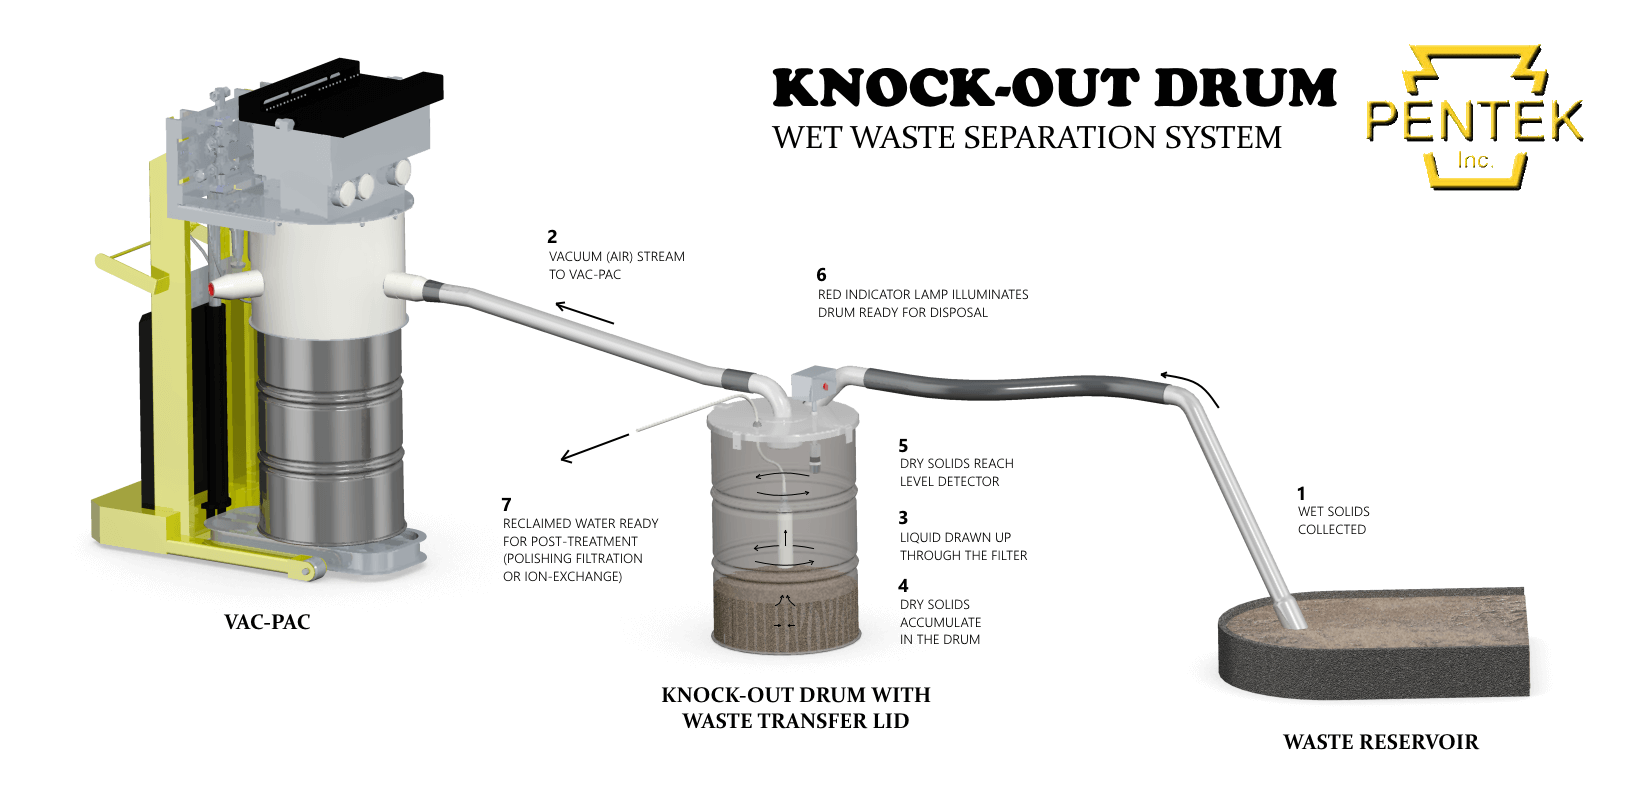 diagram of solid liquid and gas xs650 wiring chopper knock-out drum | pentek, inc.